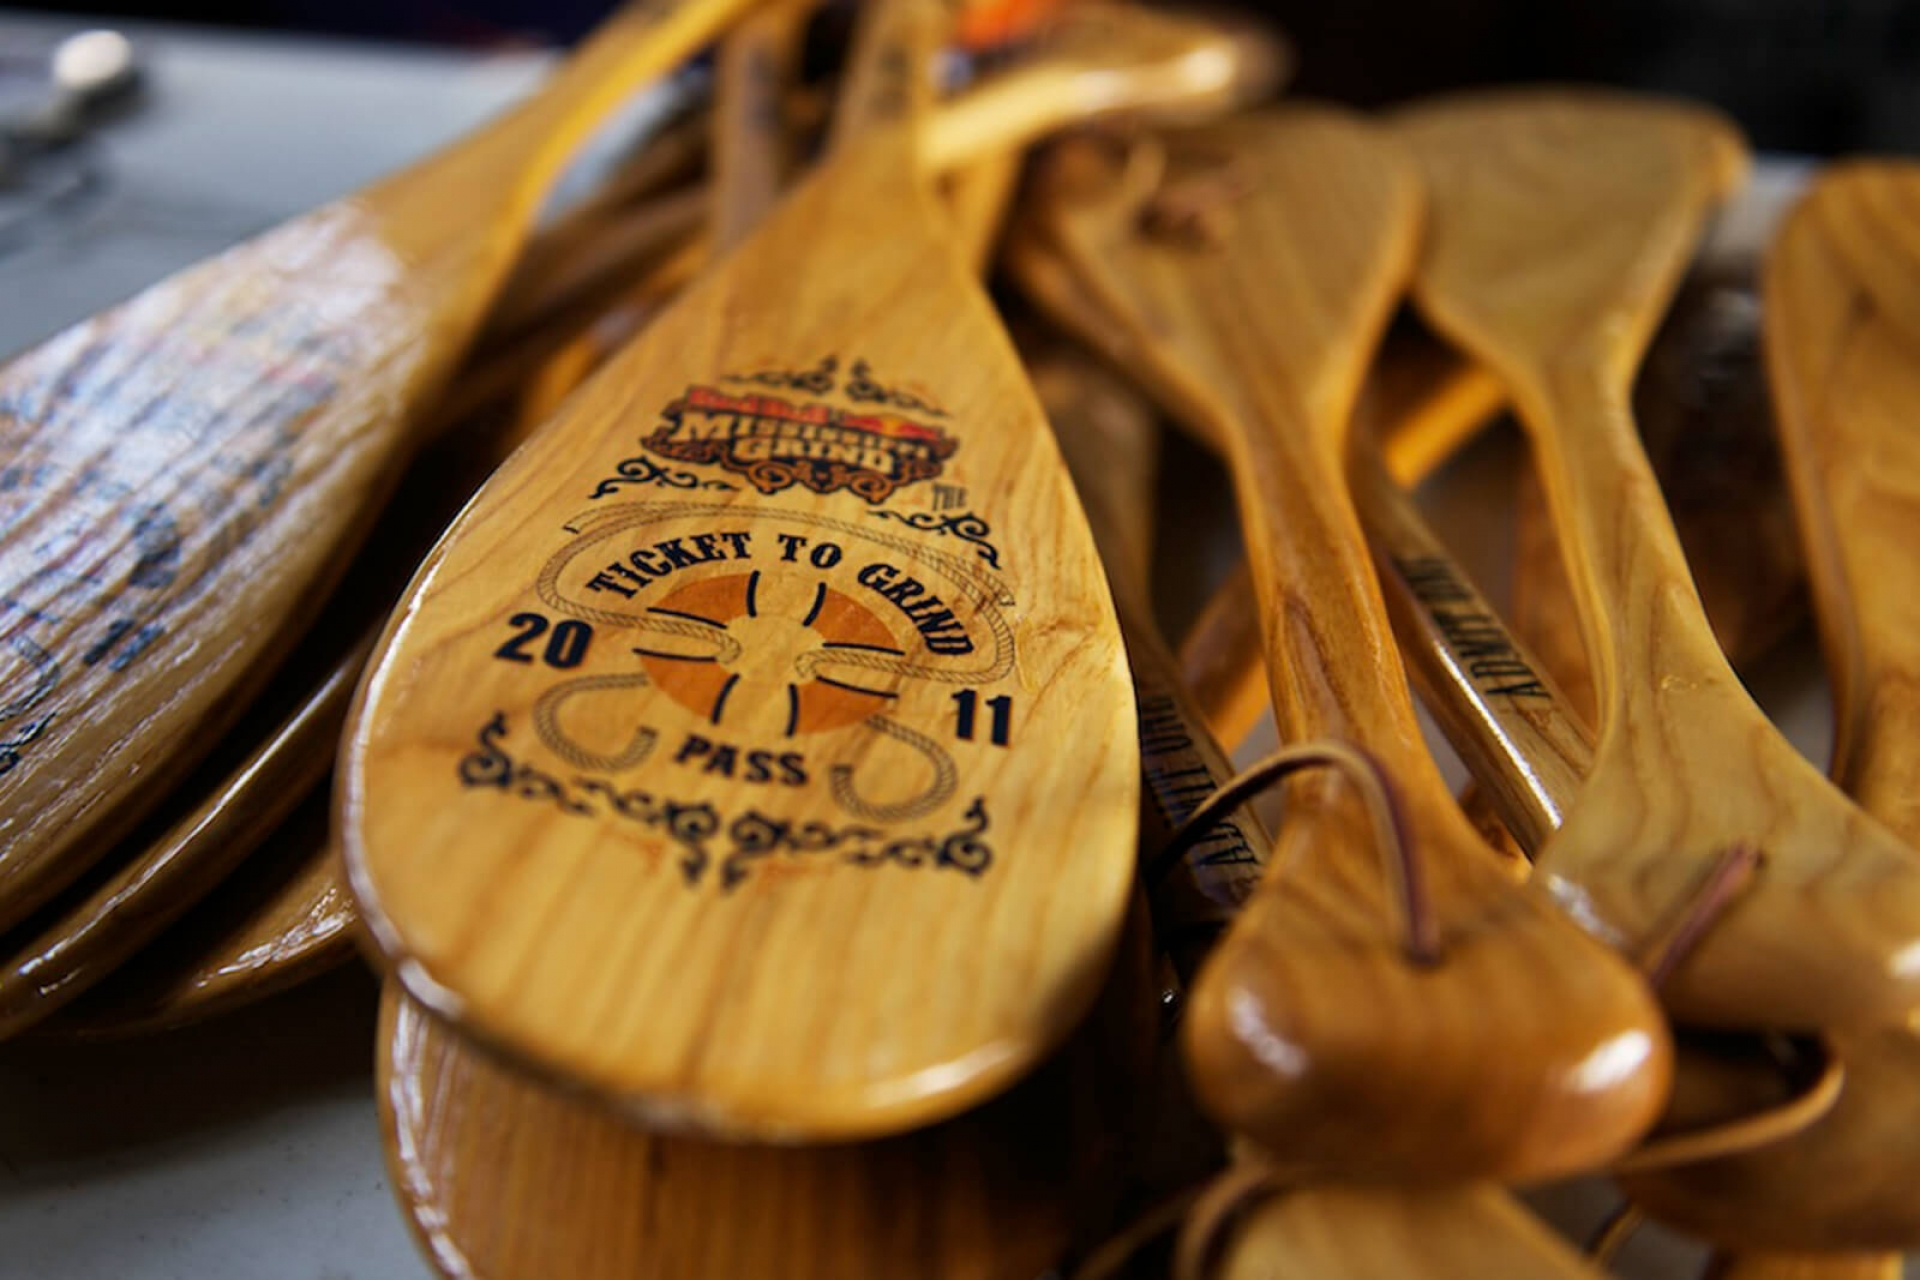 paddle with branding on it